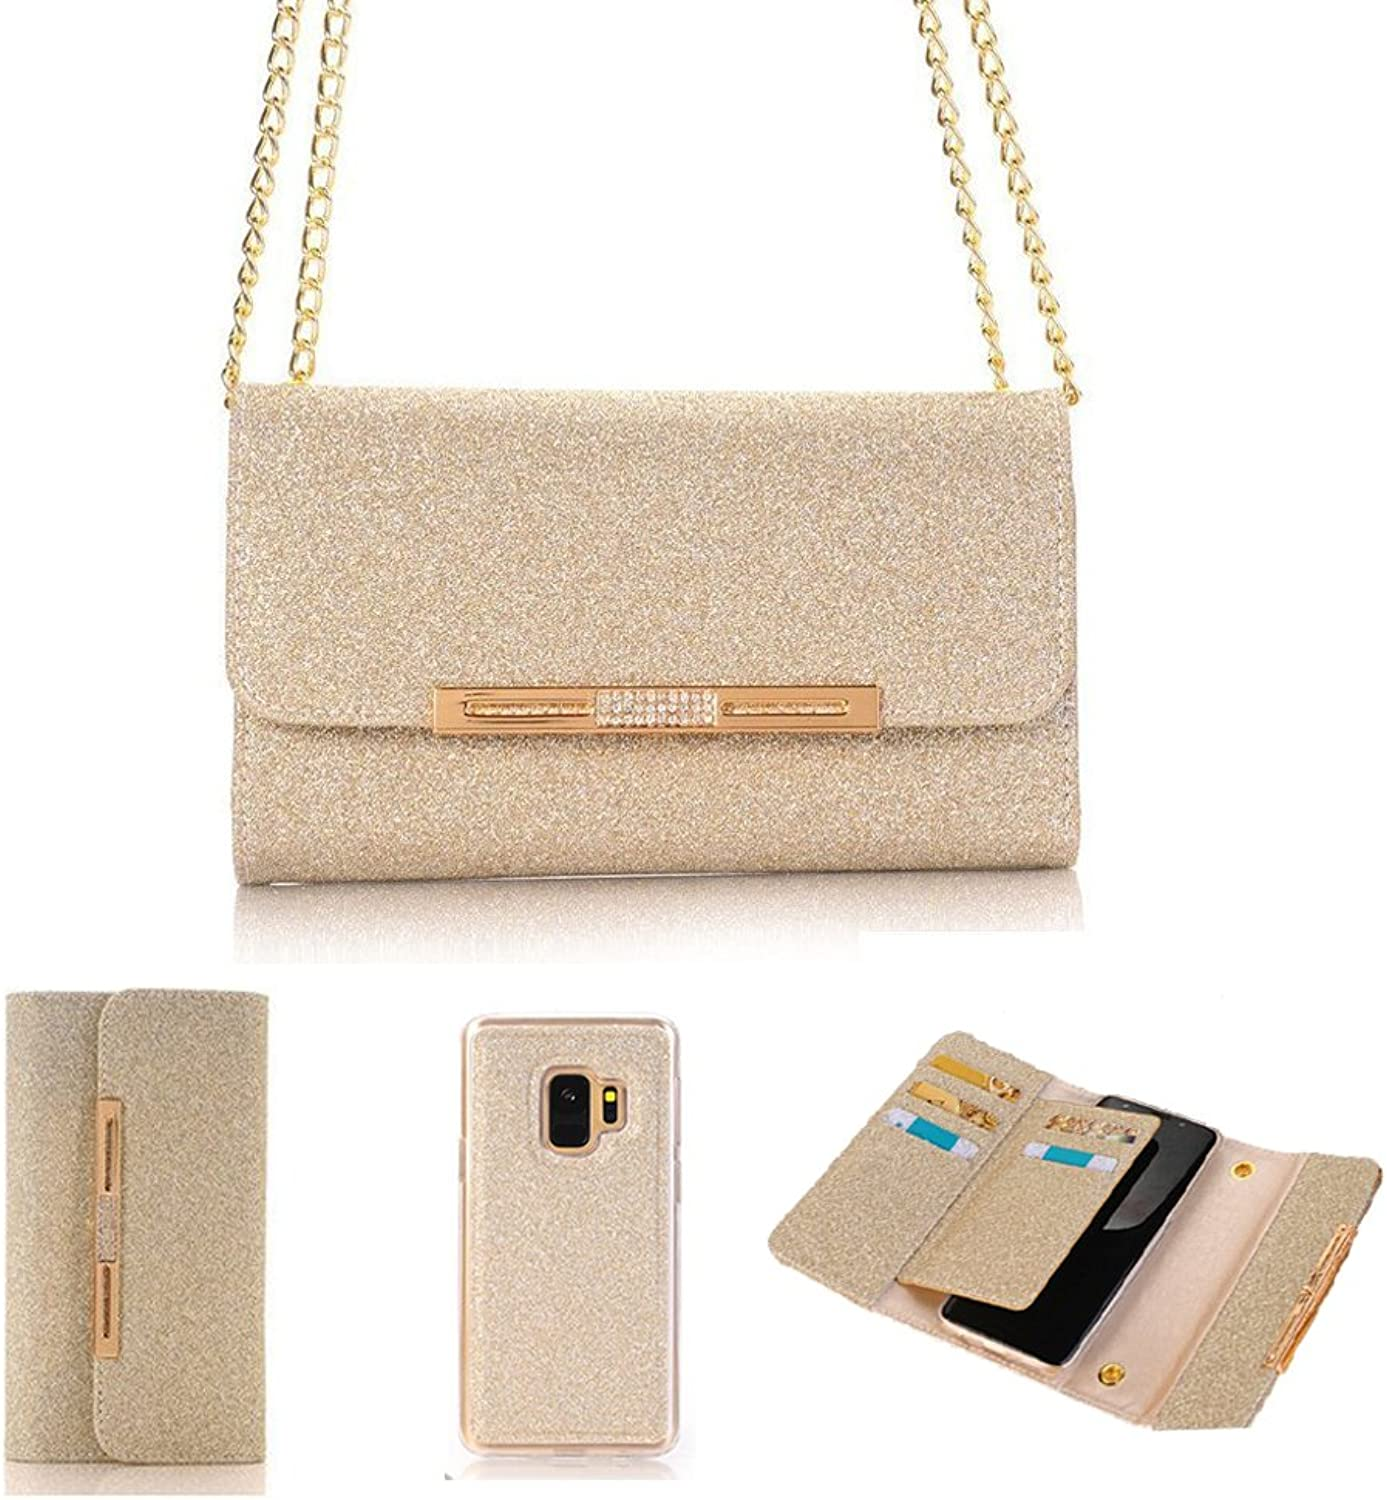 Wallet Phone Case with Detachable Magnetic Back Case Leather Women Stylish Bling Shiny Multi Envelope Wristlet Handbag Clutch Wallet Cover& Metal Chain for Samsung Galaxy S9 Plus -gold